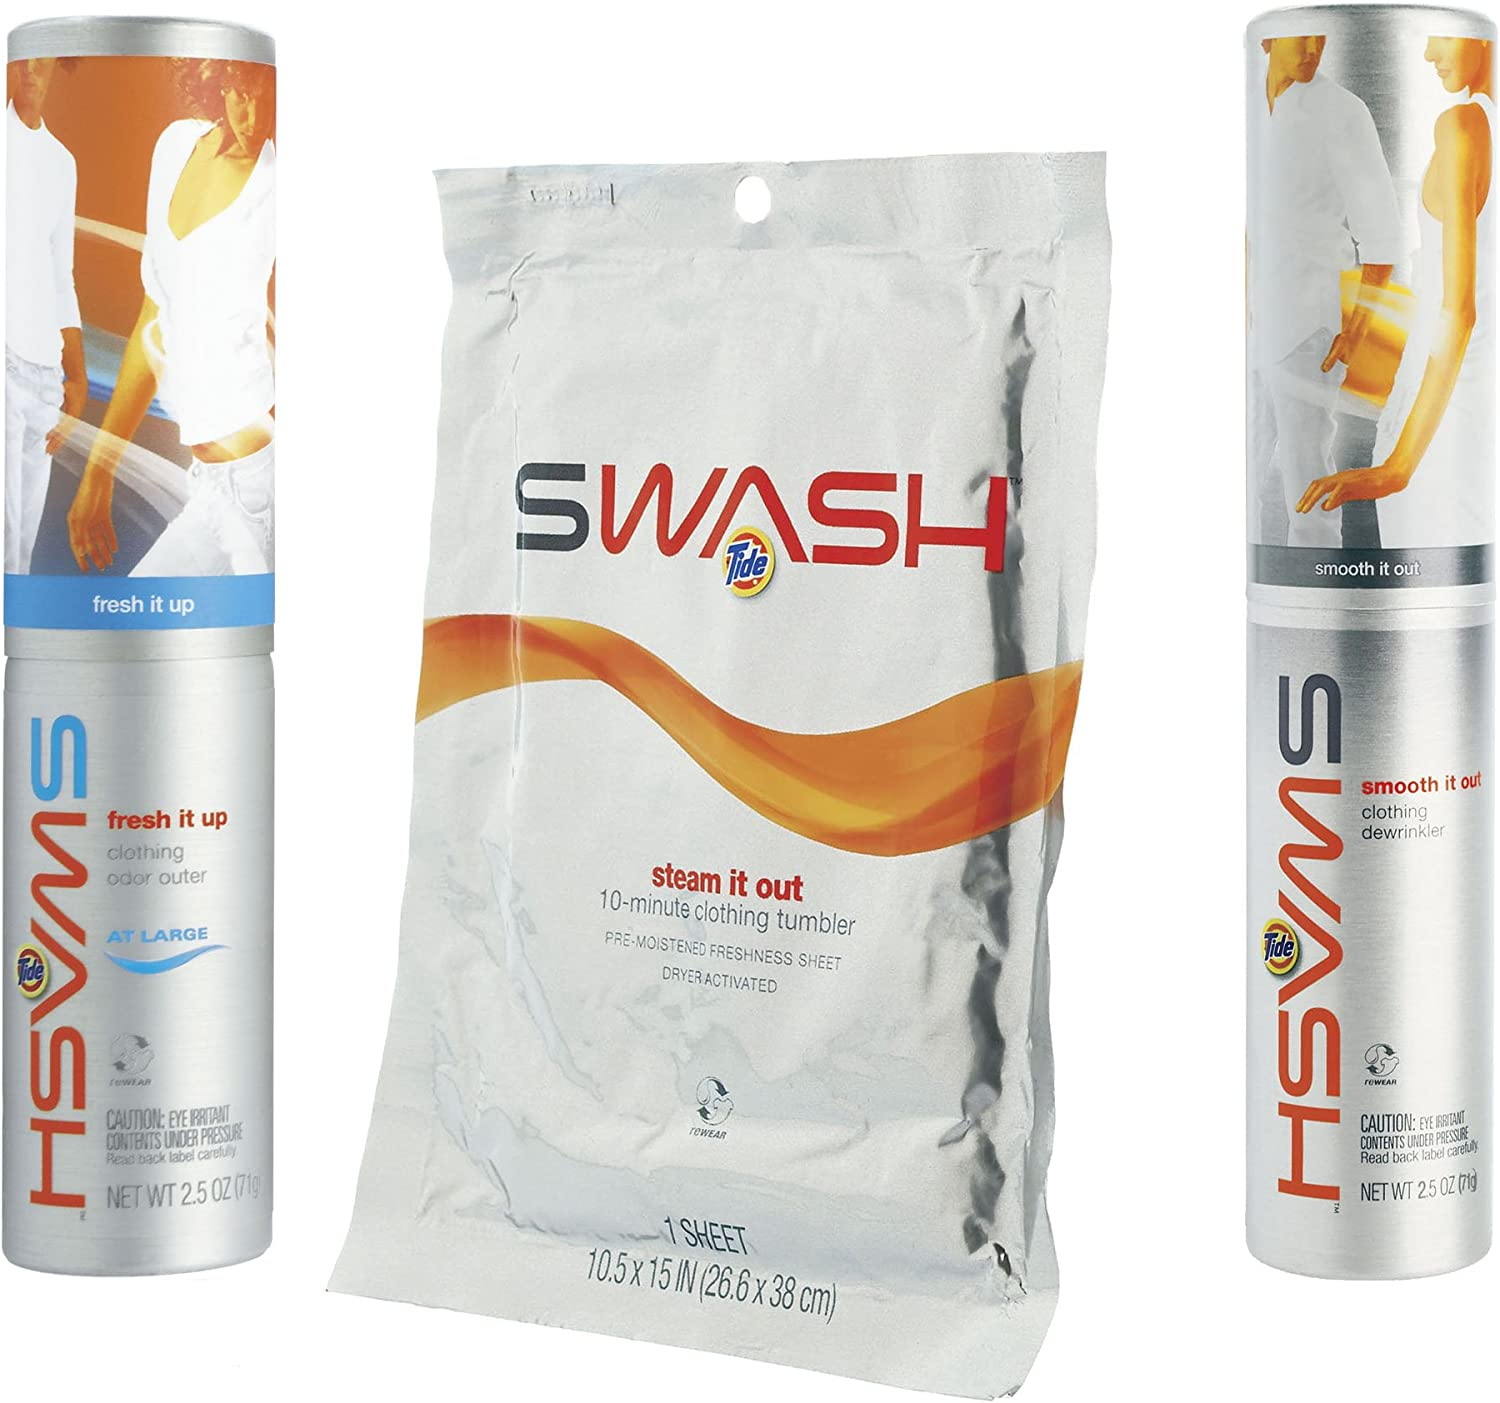 Swash Variety Pack; Fresh It All stores are sold Steam cheap Up Out Smooth